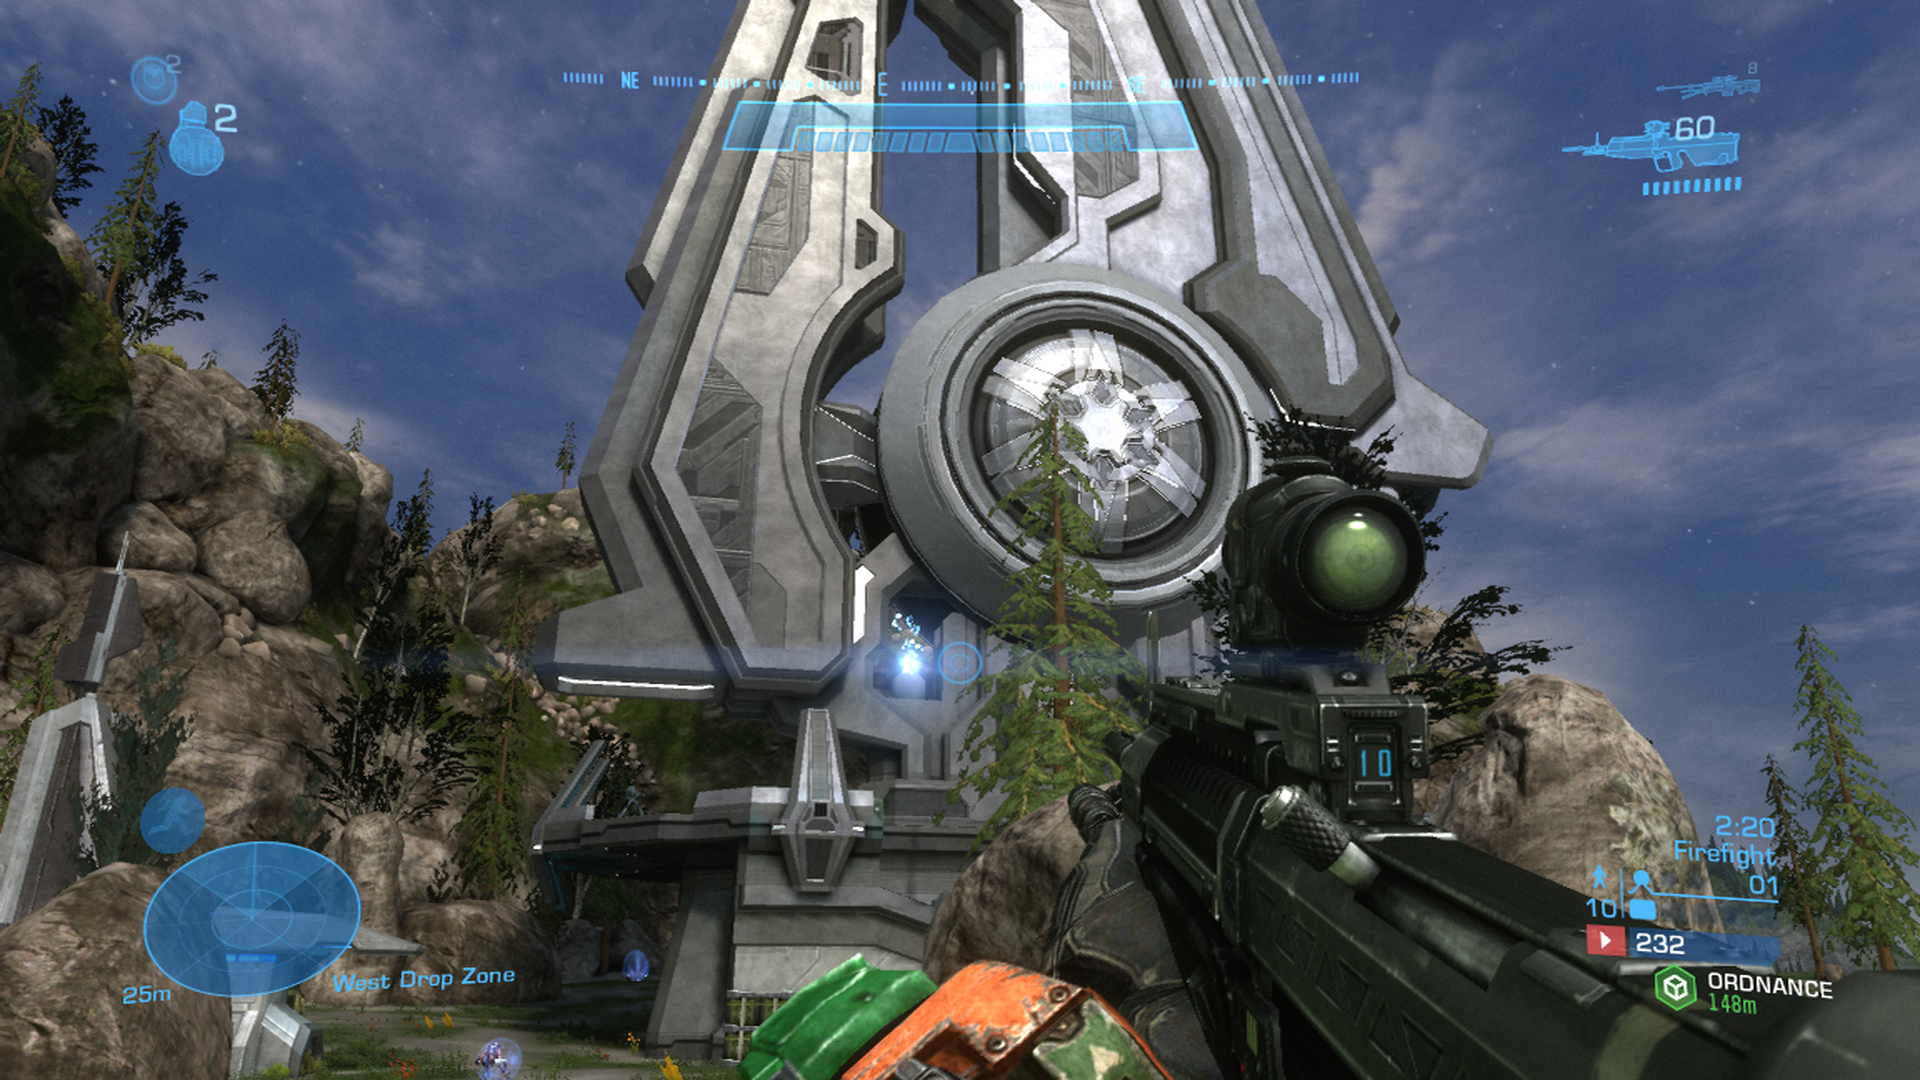 Halo: Reach - Anniversary Map Pack Screenshots for Xbox 360 - MobyGames